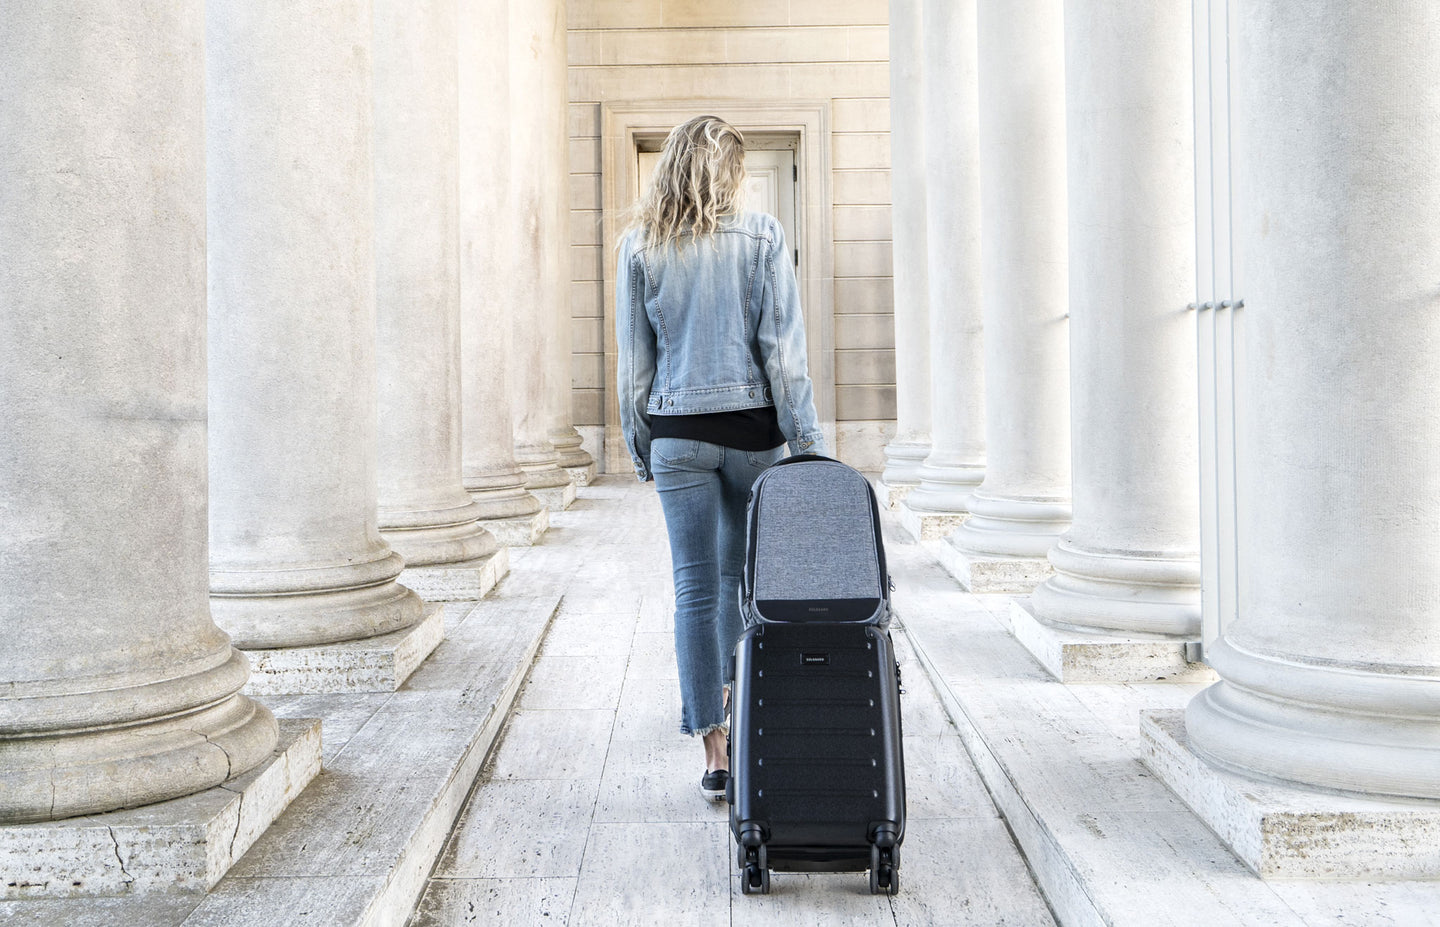 Premium, travel luggage and bags for global citizens